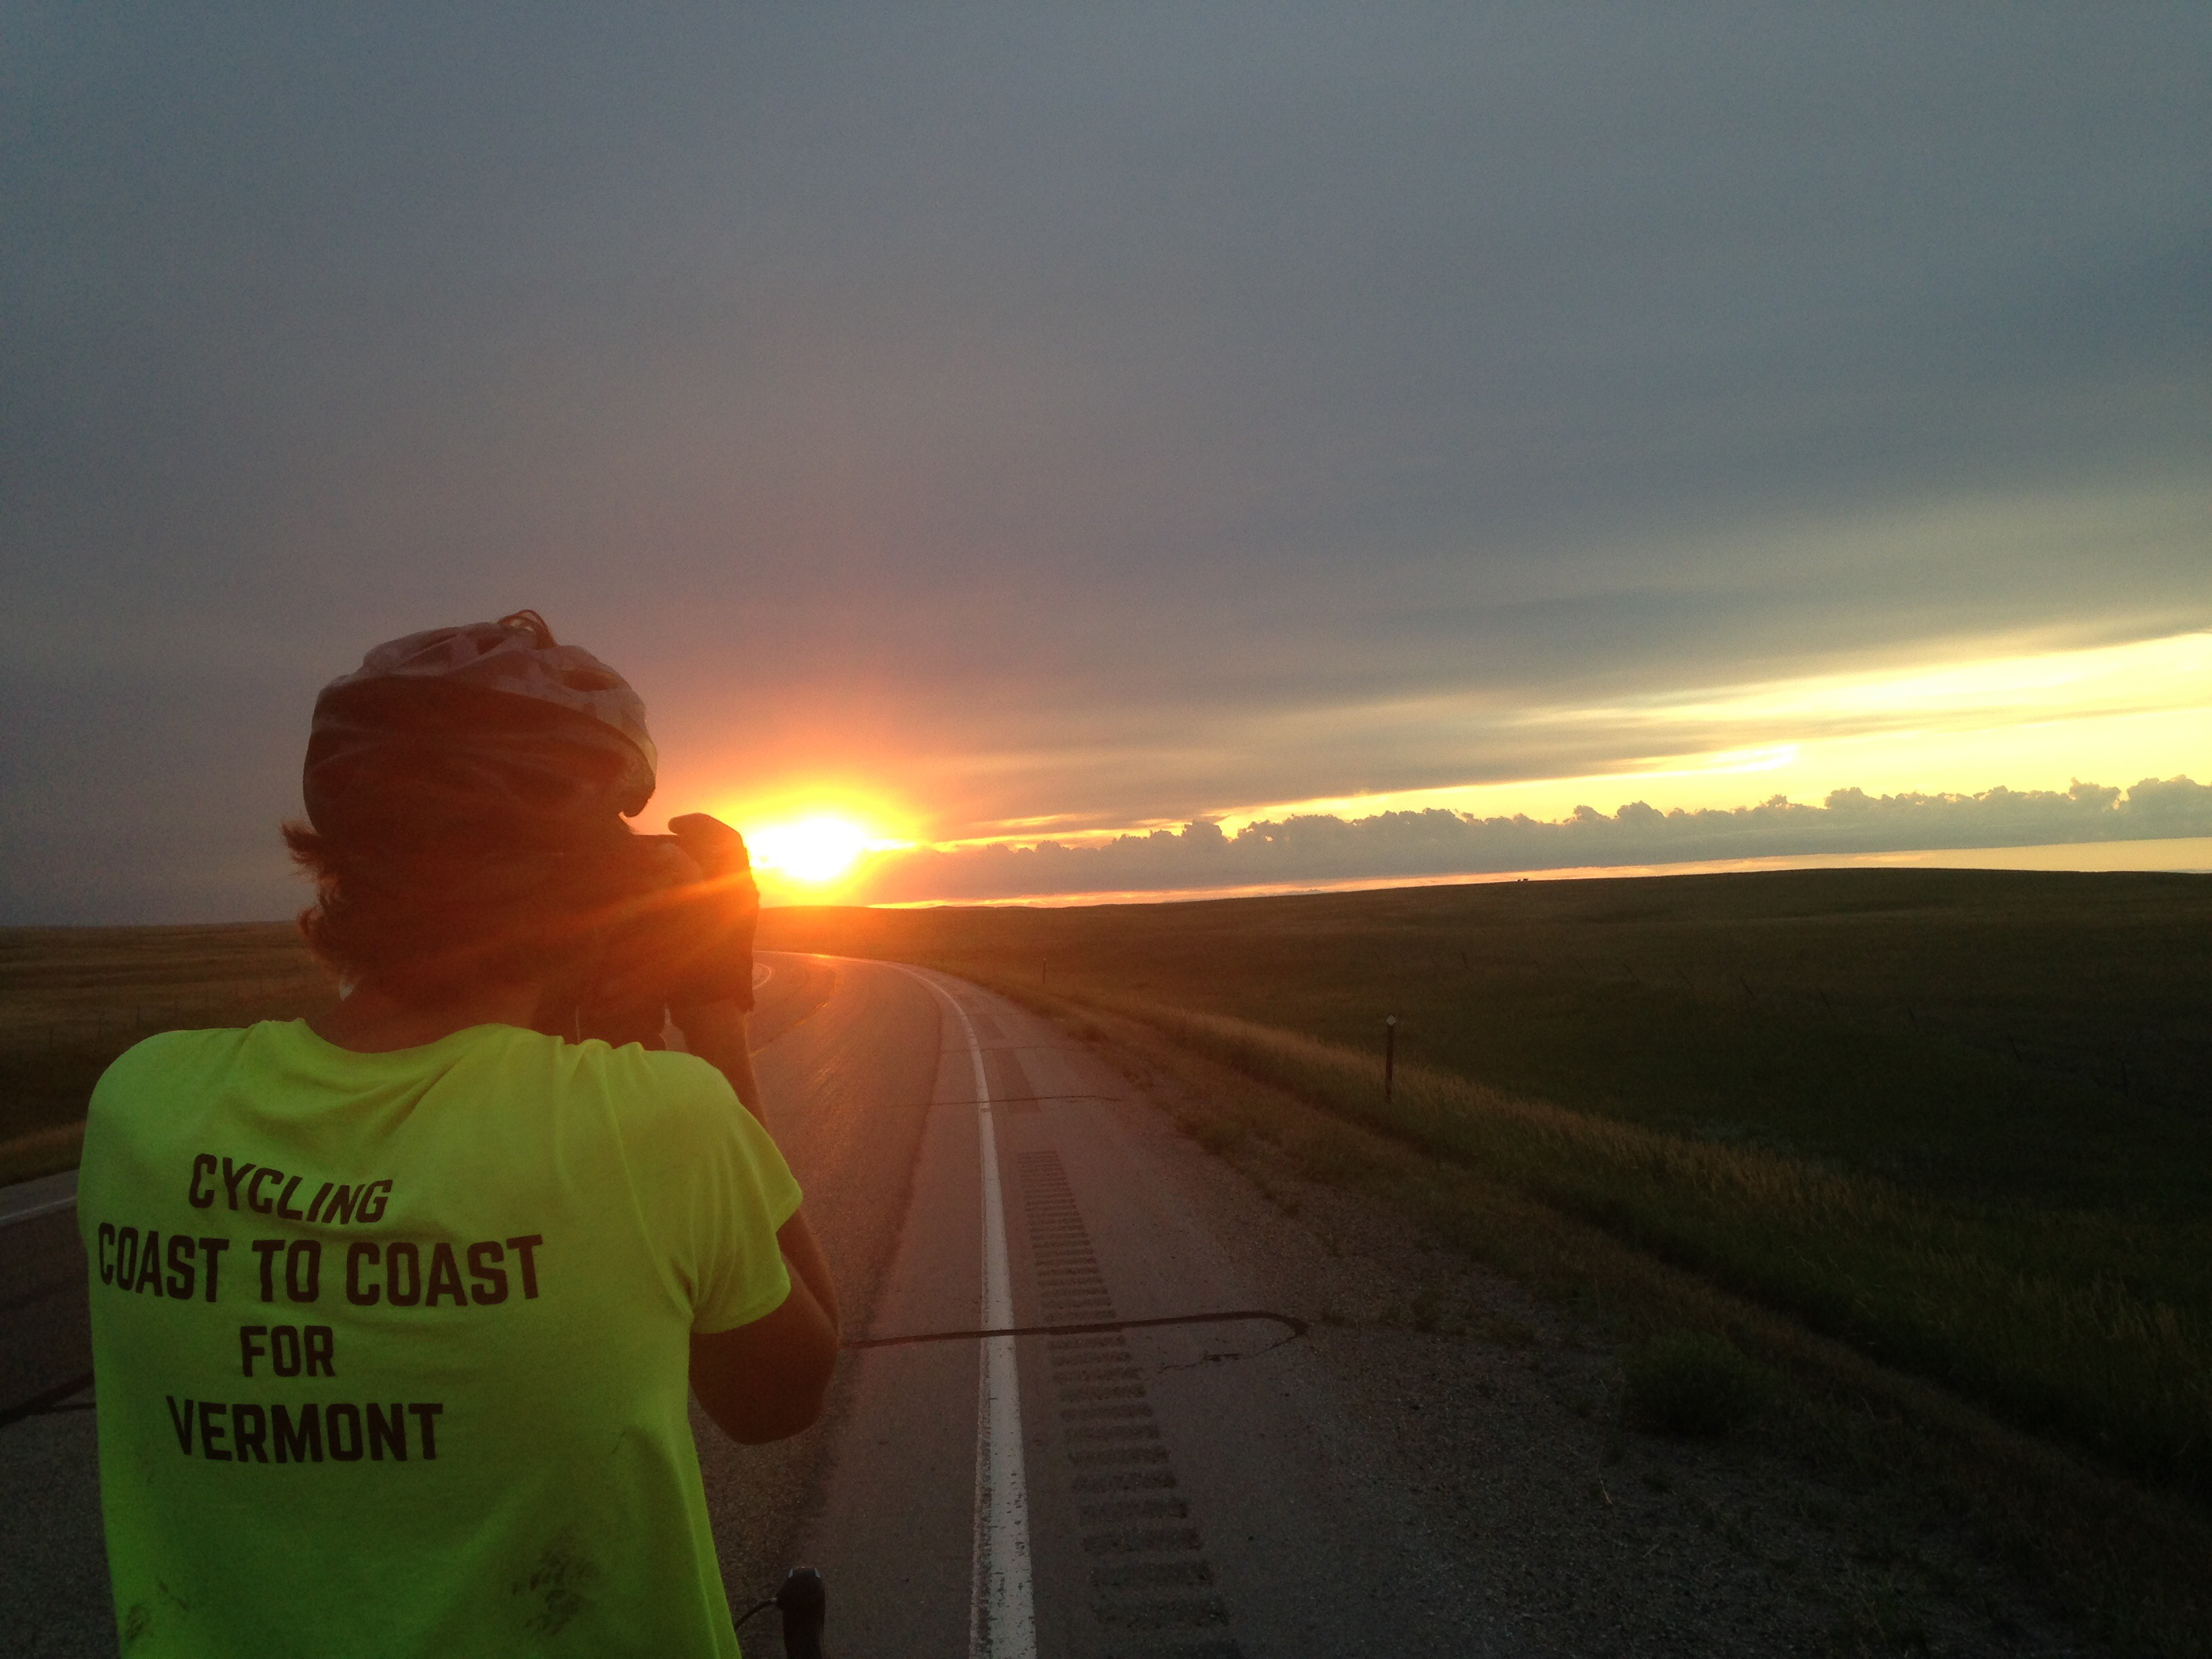 Cycling coast to coast image ©Clara Slesar